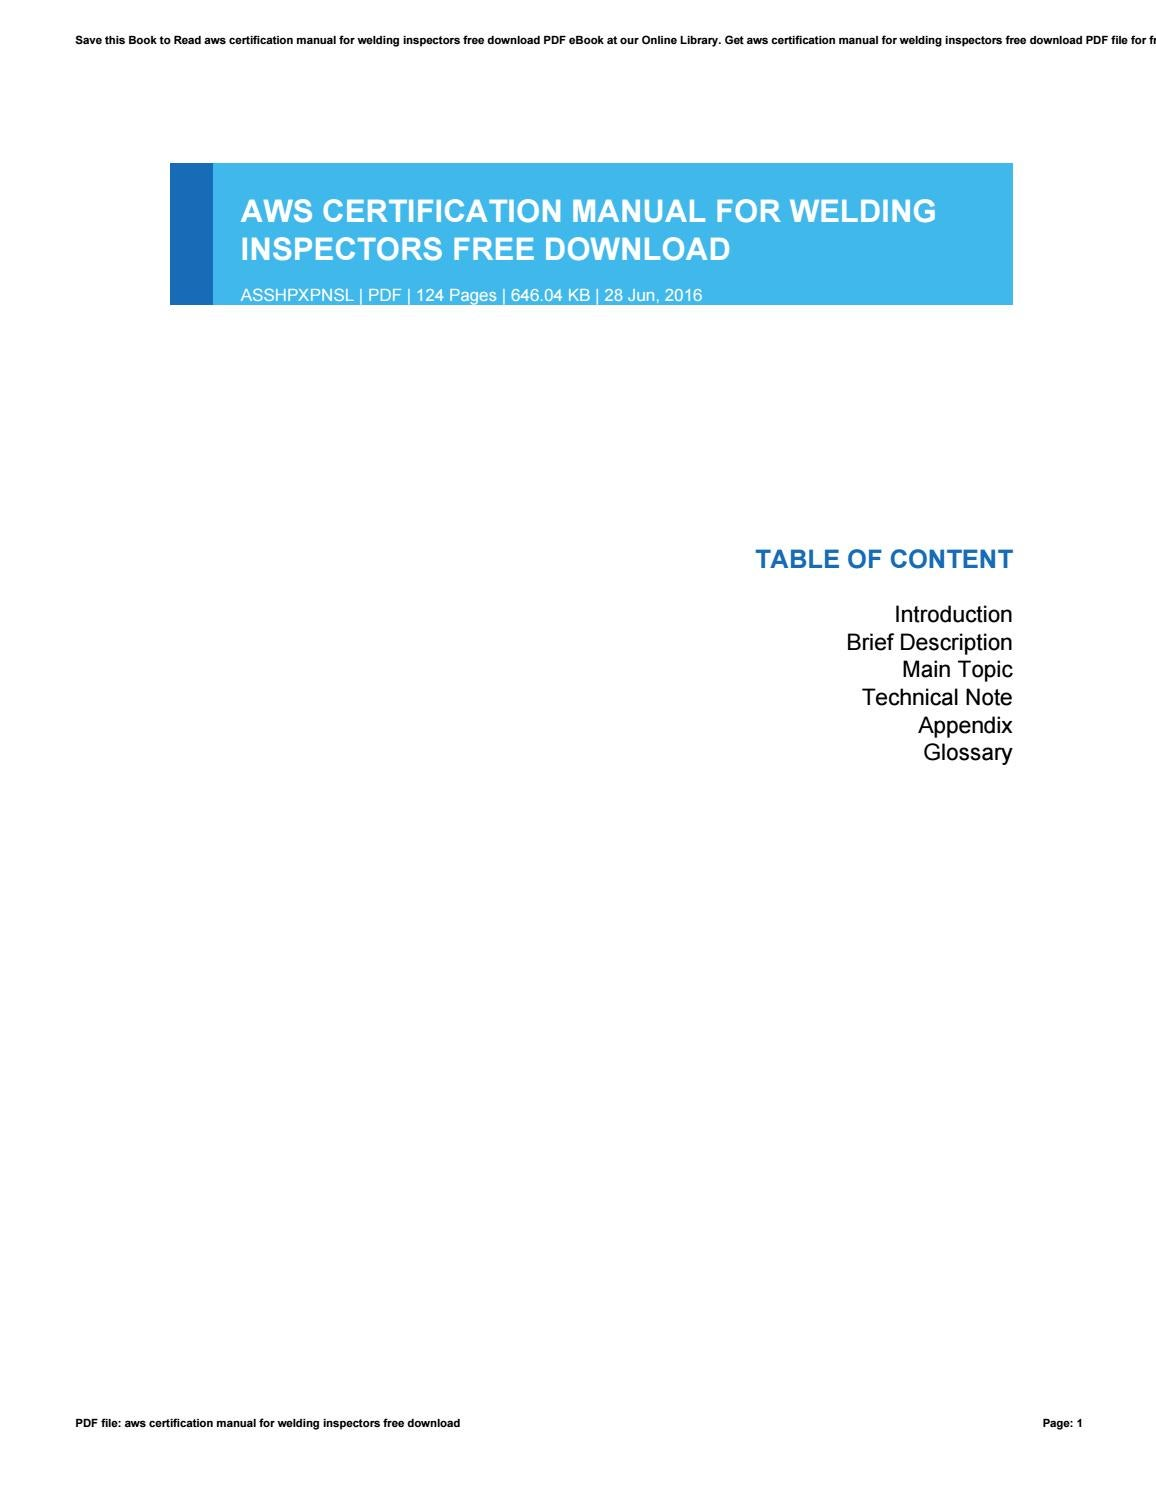 aws certification manual for welding inspectors pdf